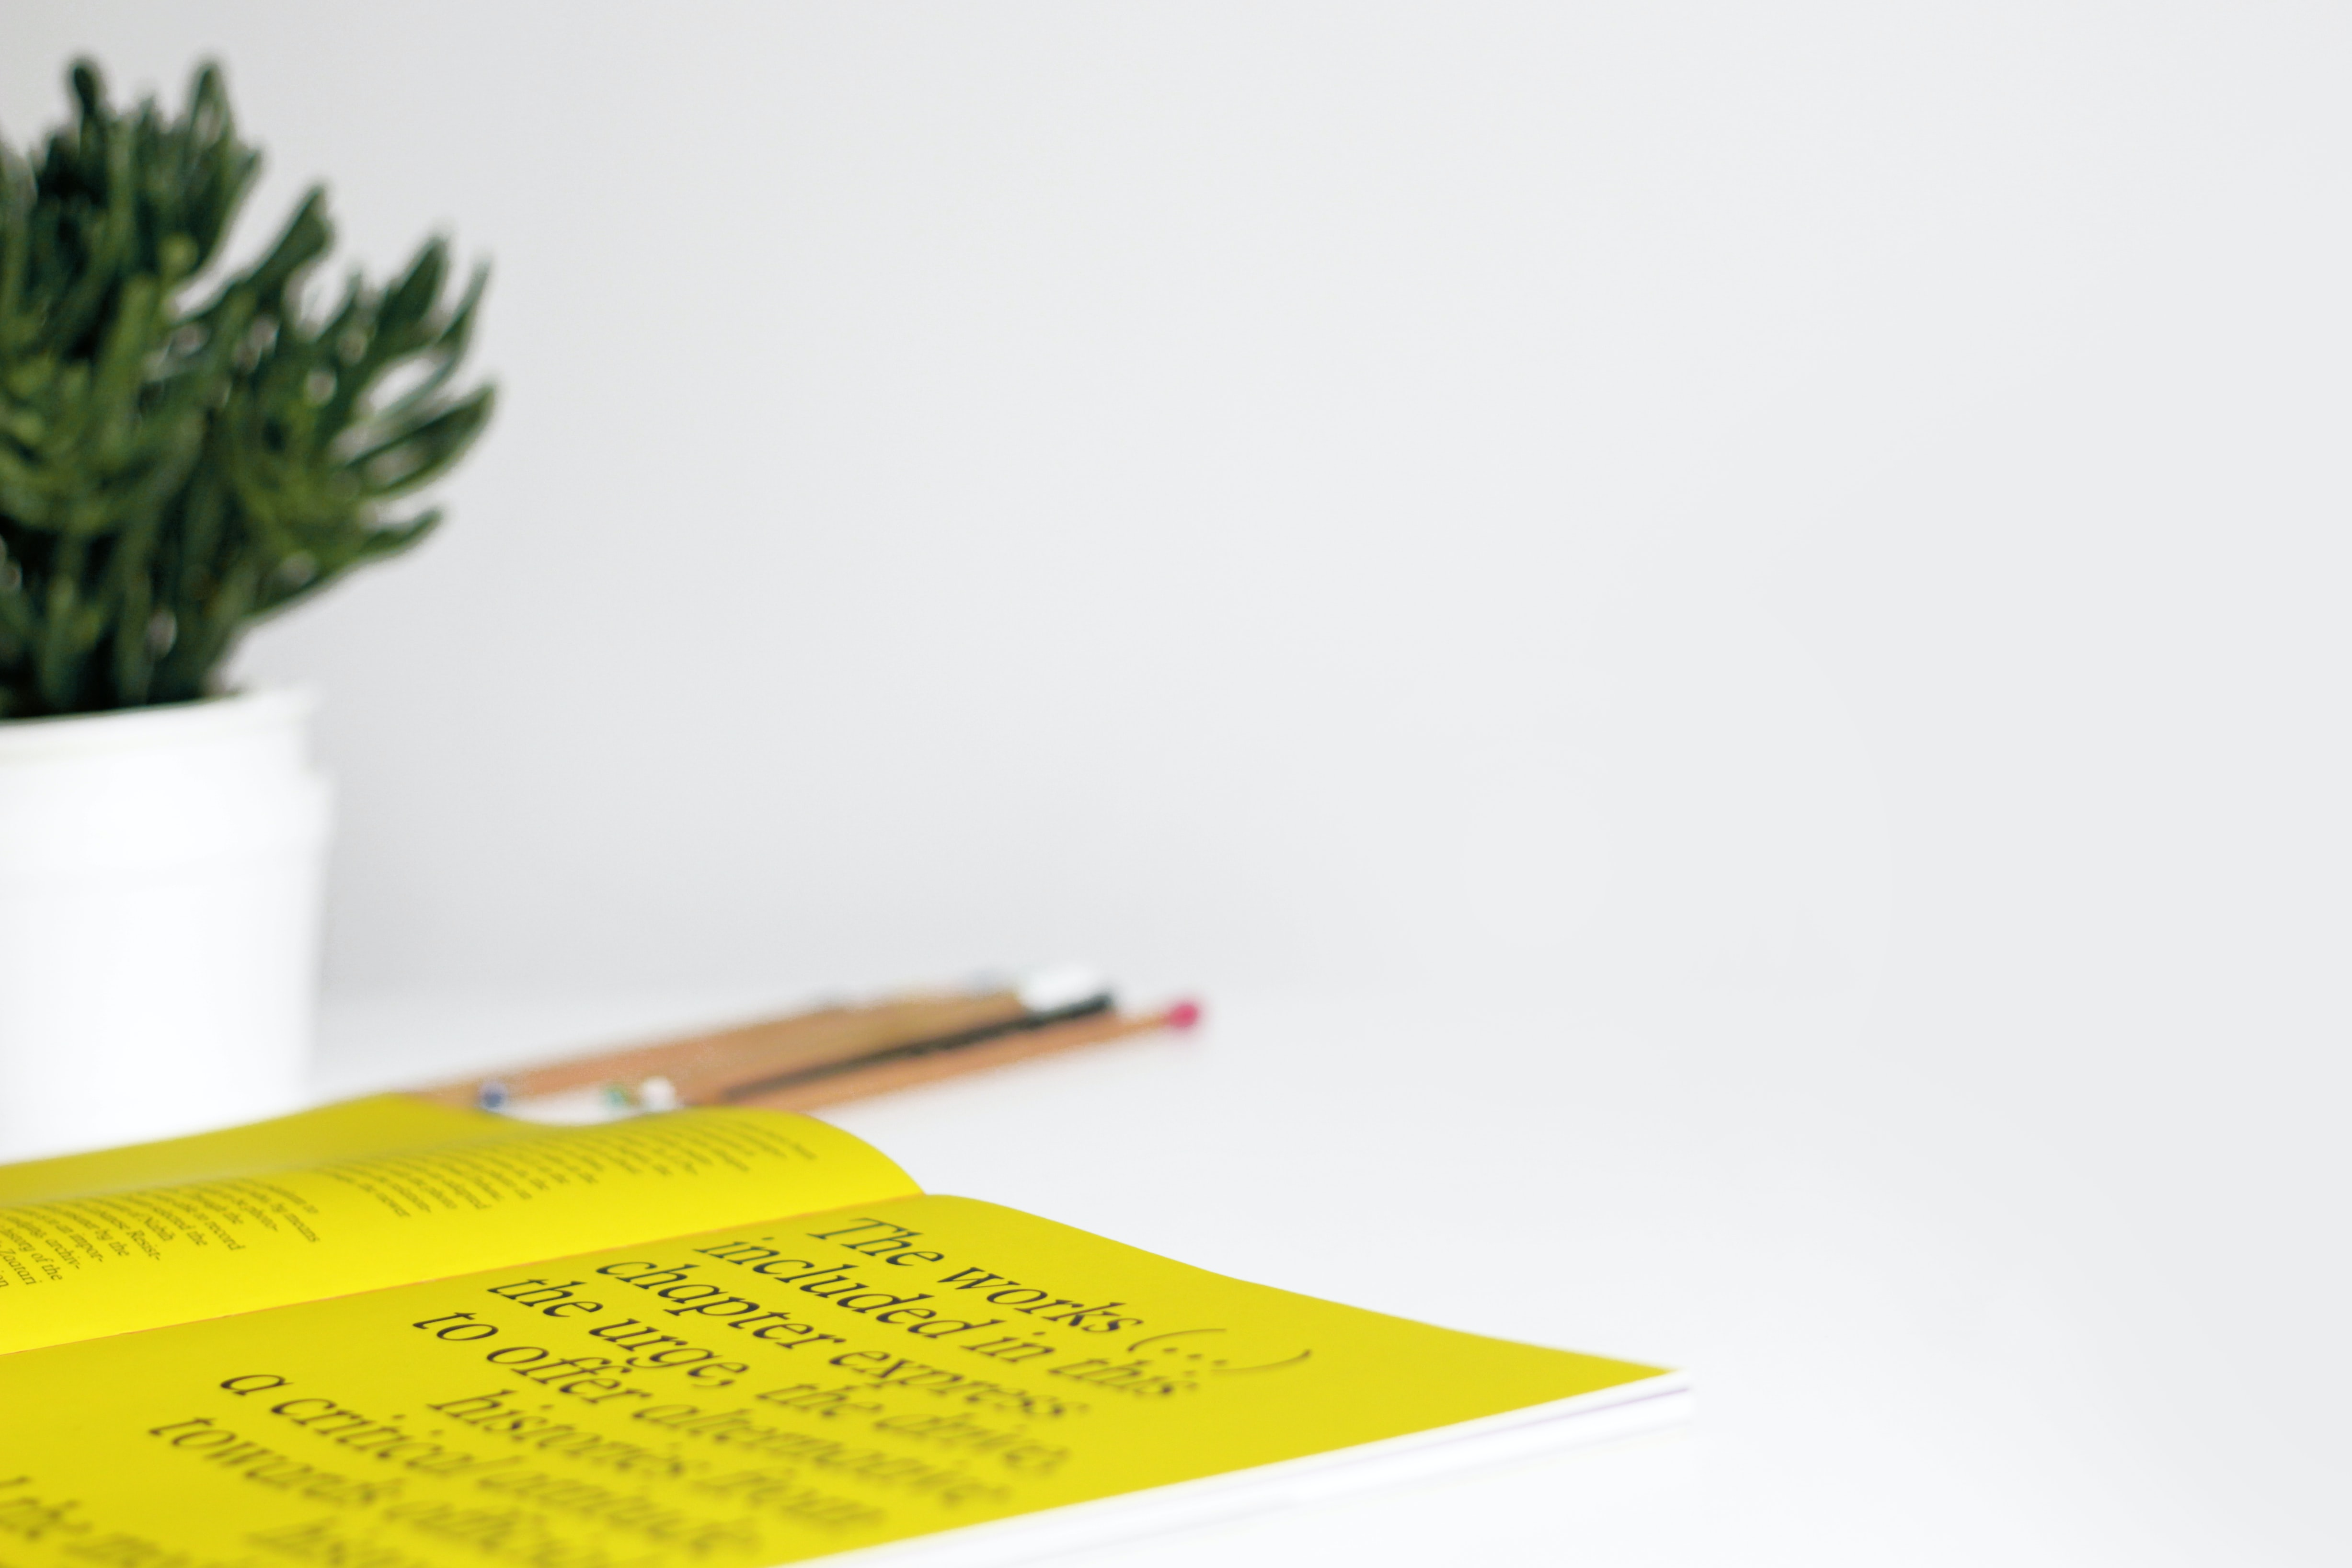 A picture of a white desk, with on the left a plant and on the desk a book with yellow pages and pencils laying next to it.